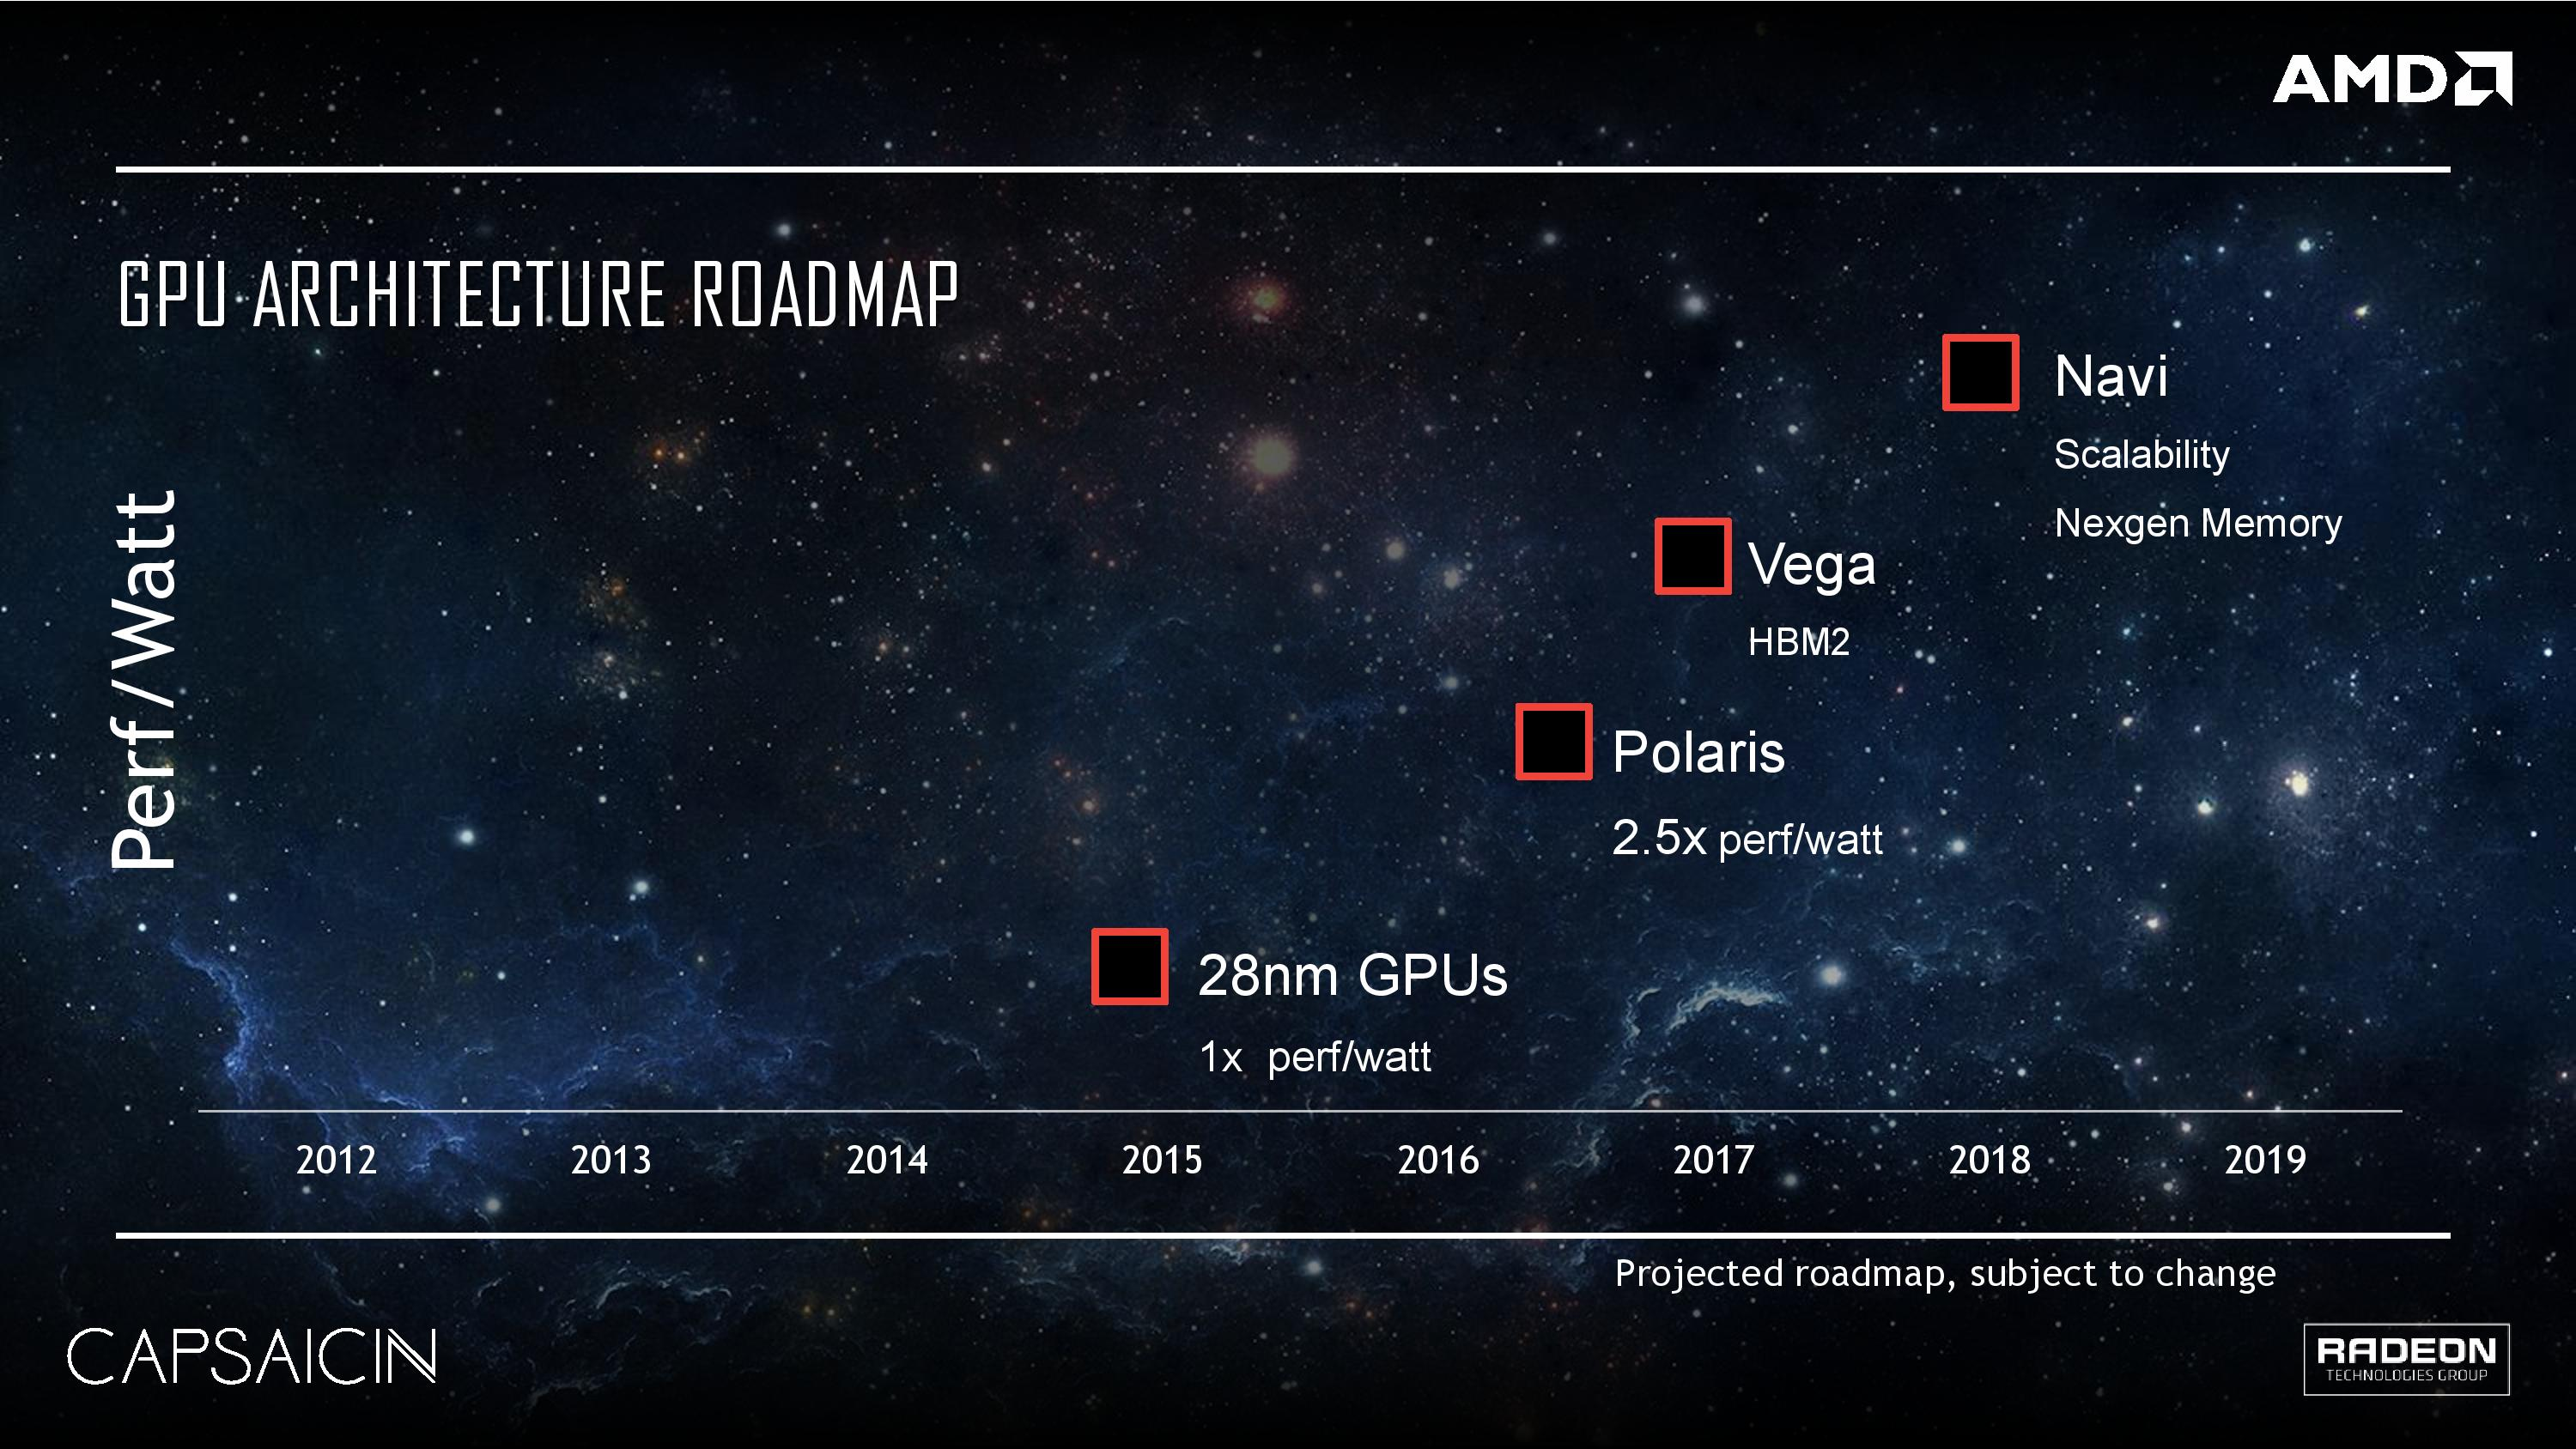 Roadmap Of The Us%0A AMD Radeon Technologies Group Roadmap Vega Polaris Navi